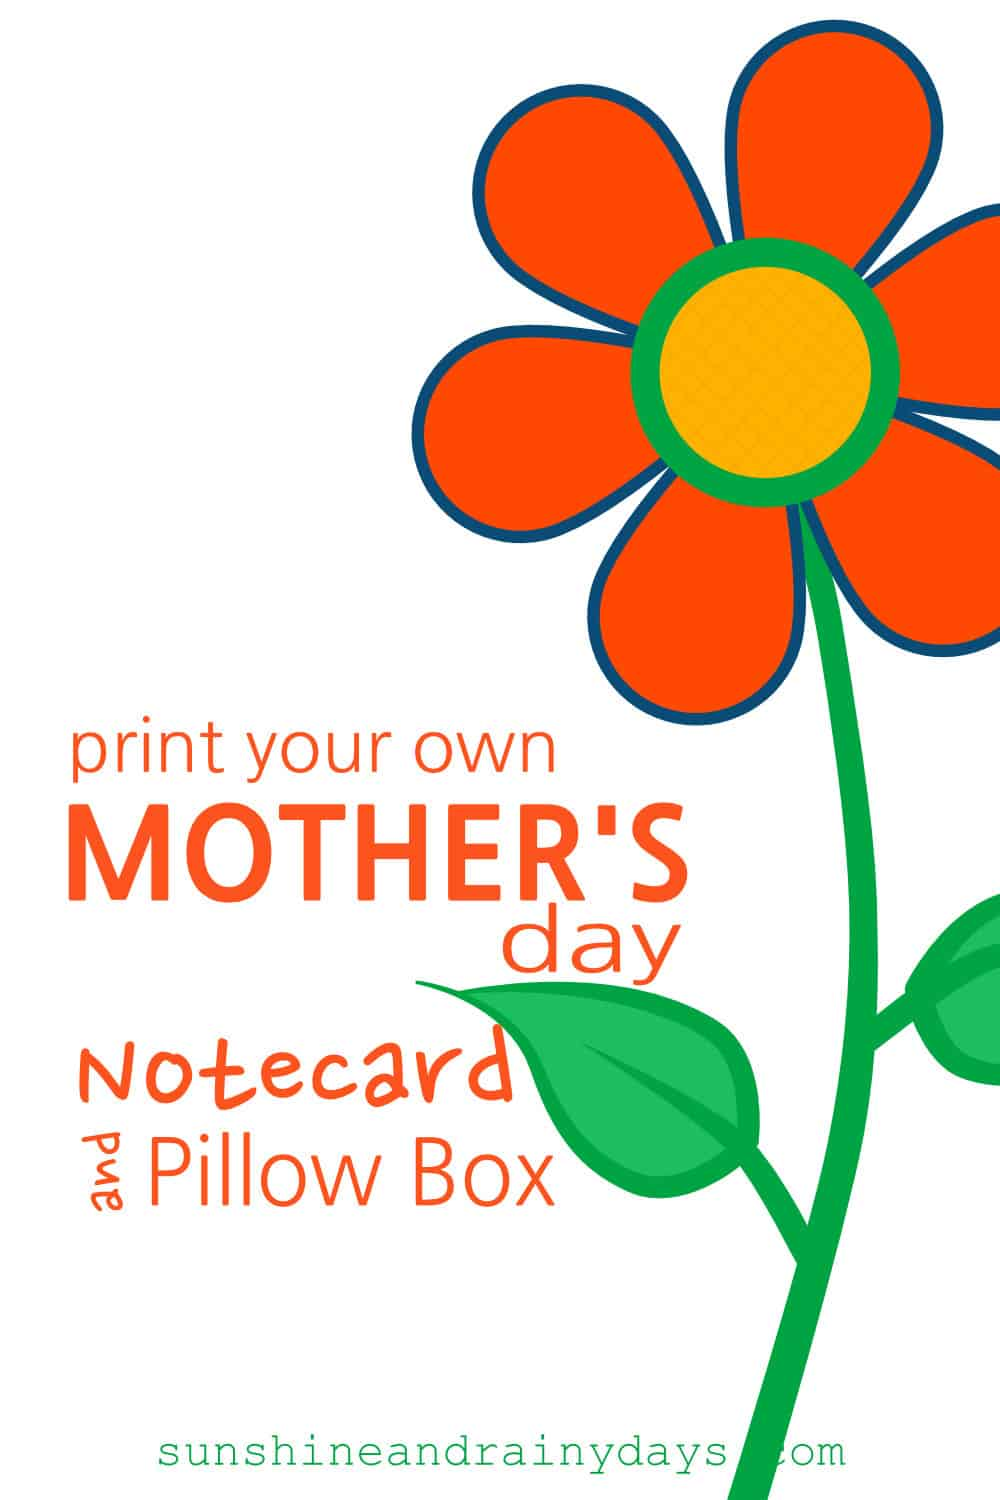 Do you want to spend your Mother's Day budget on the gift and not the card? You're in luck! Not only have we created a Mother's Day FREE Printable Notecard for you, but we have also created a Mother's Day FREE Printable Pillow Box! Woot! Woot!